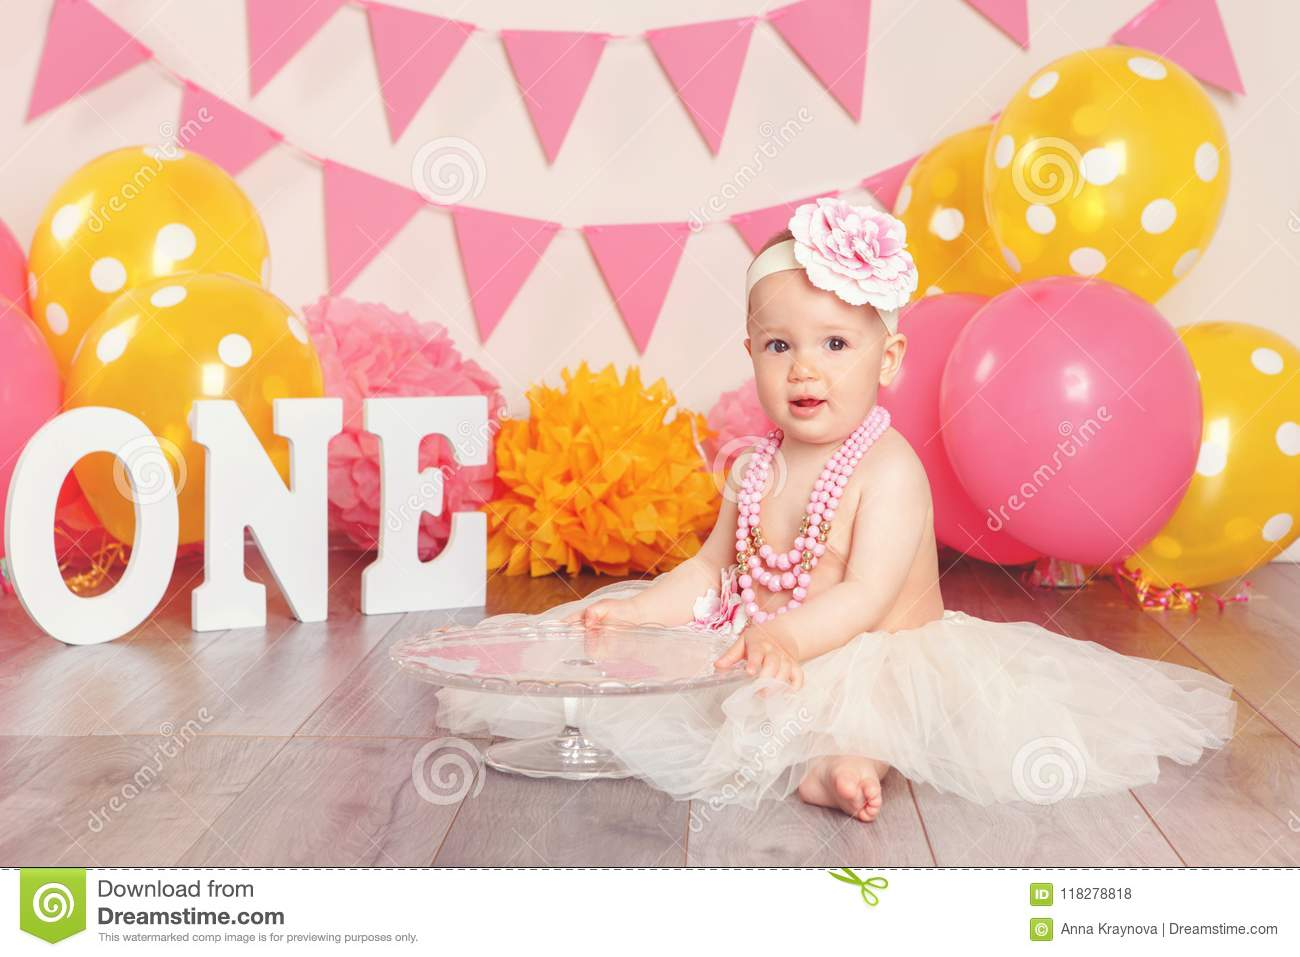 Swell Caucasian Baby Girl In Tutu Tulle Skirt Celebrating Her First Personalised Birthday Cards Akebfashionlily Jamesorg